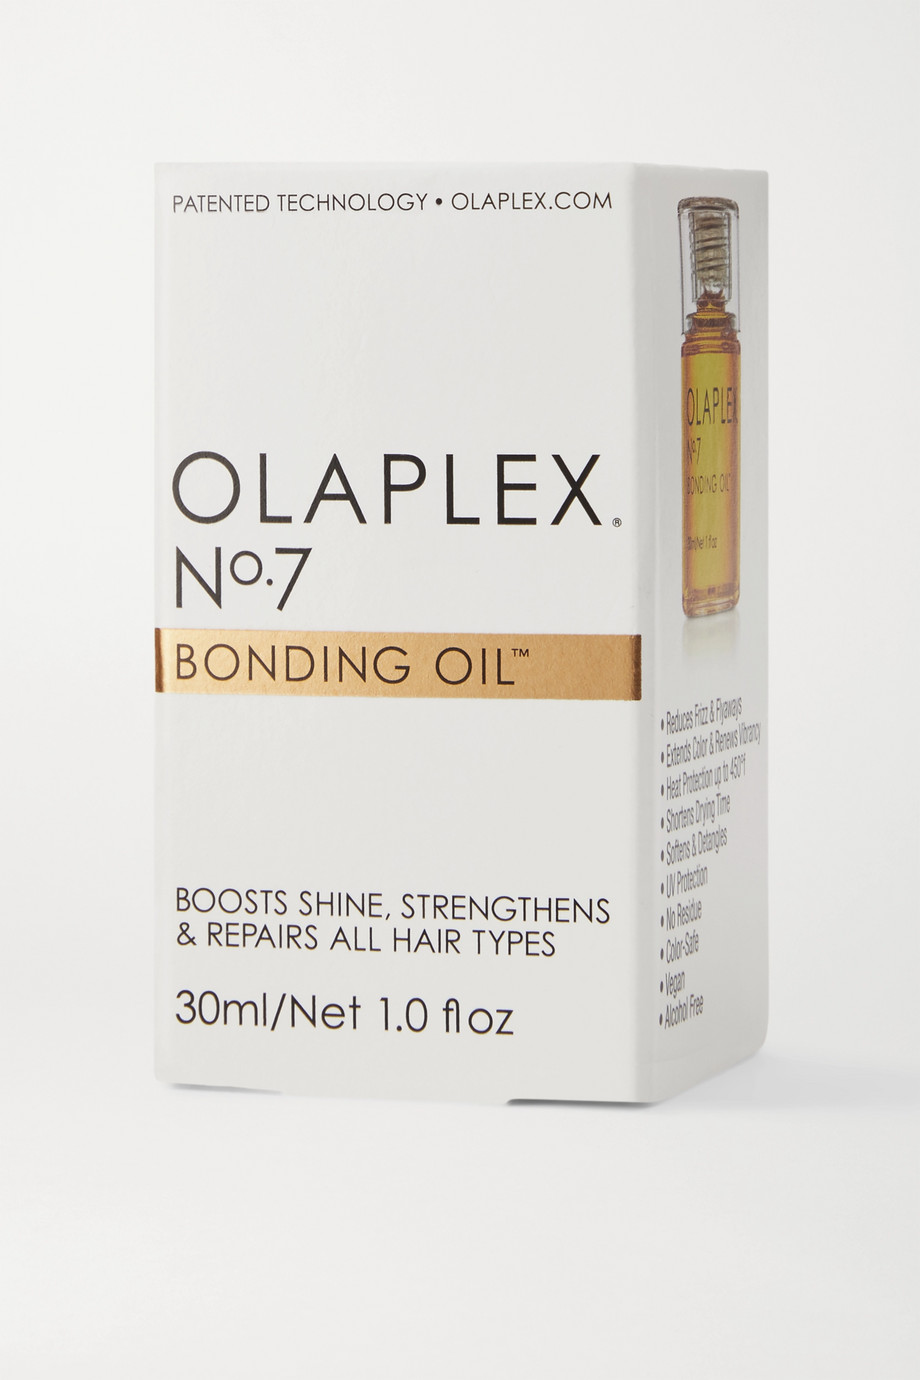 Olaplex No.7 Bonding Oil, 30ml